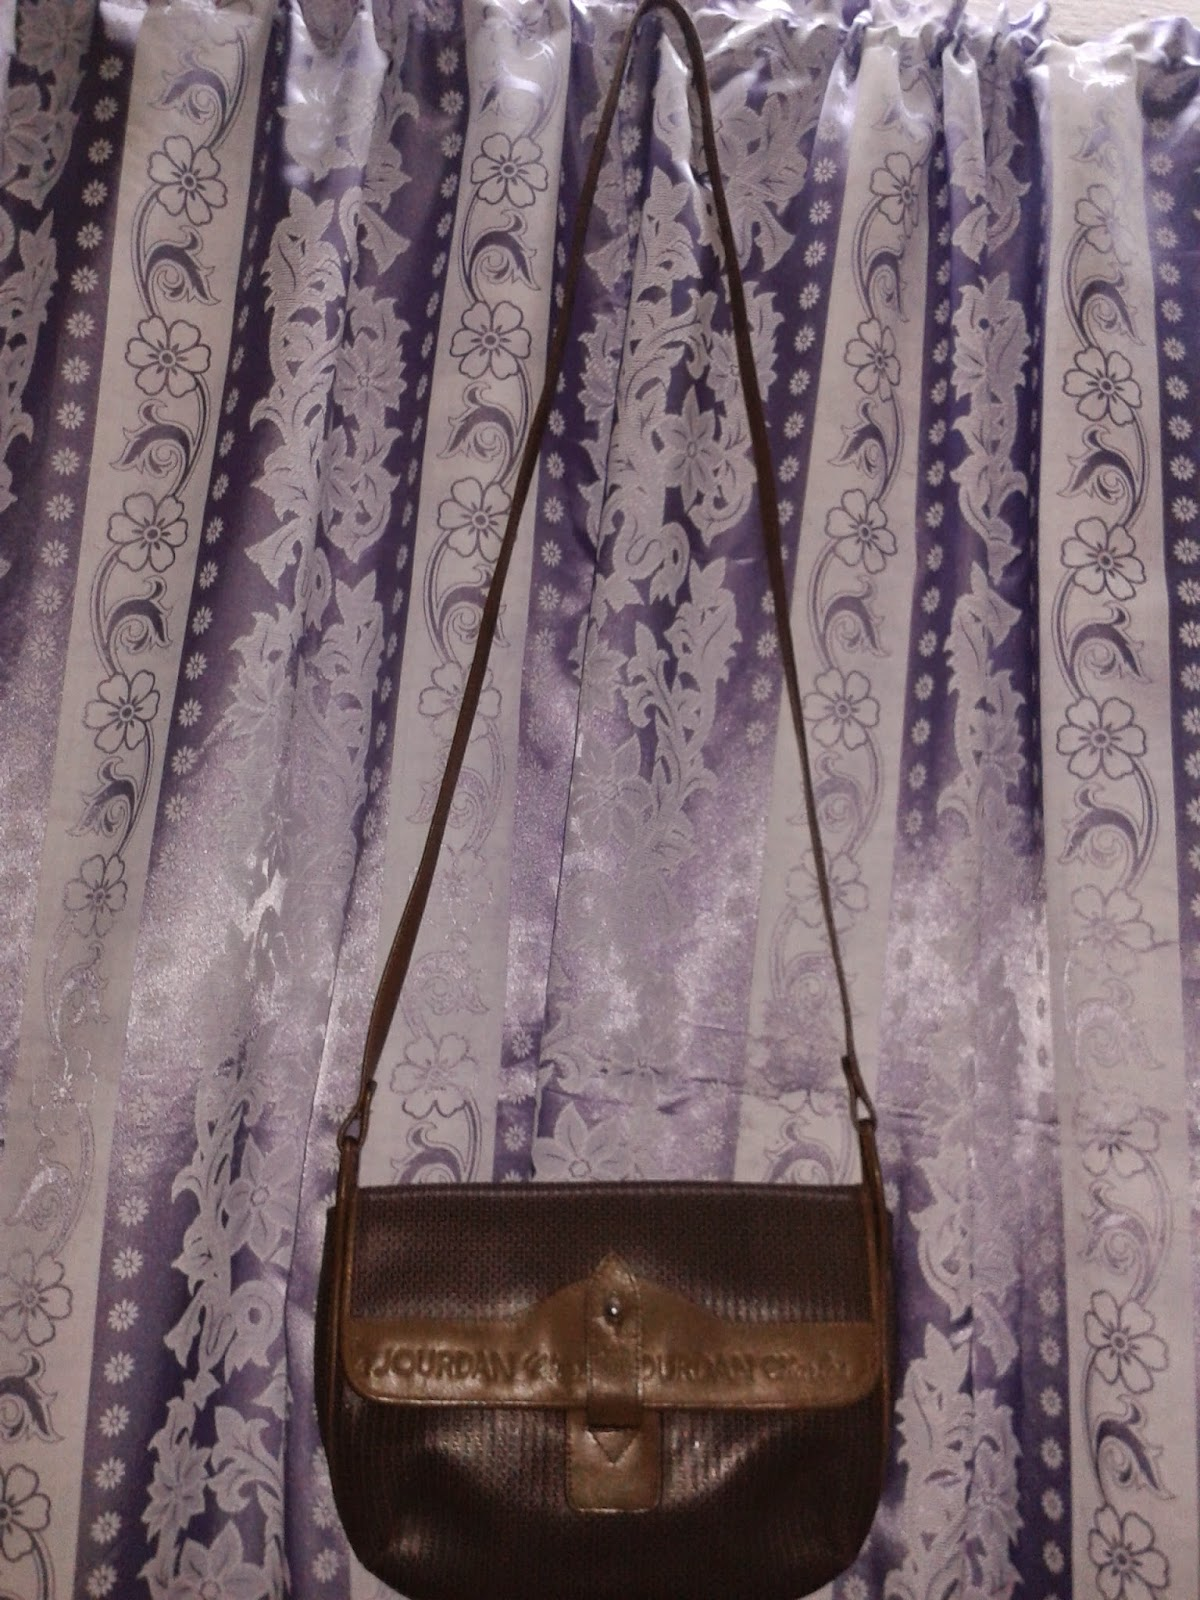 725a44d85139 Authentic CHARLES JOURDAN brown mini sling handbag to let go. Still in good  condition 9 10. Size 6  x 8 1 2  Price RM150 Add RM10 postage to peninsular  ...